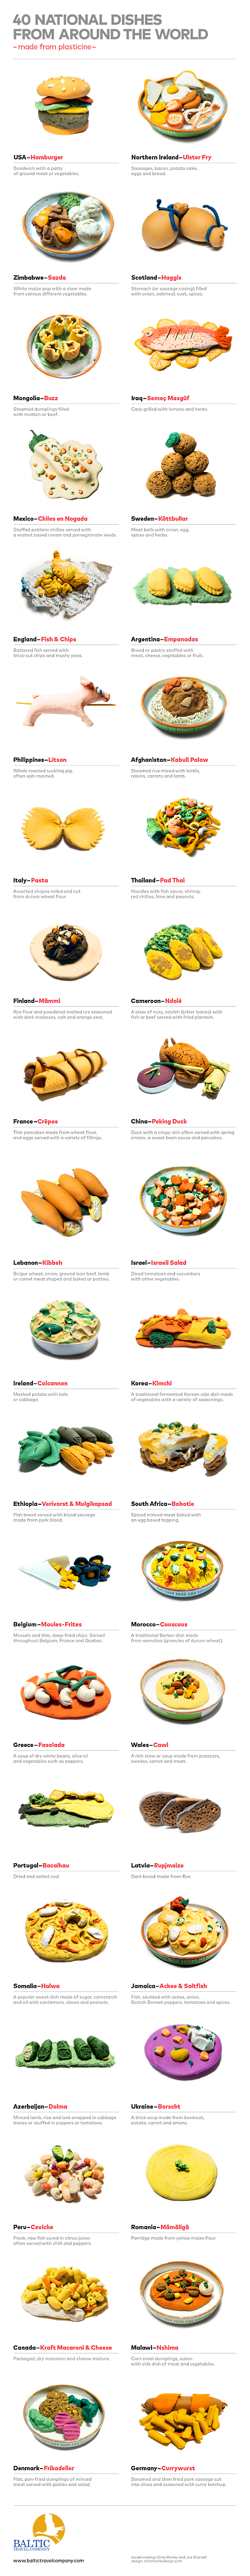 40-national-dishes-from-around-the-world-made-from-plasticine-thumbnail_5384500f965e3